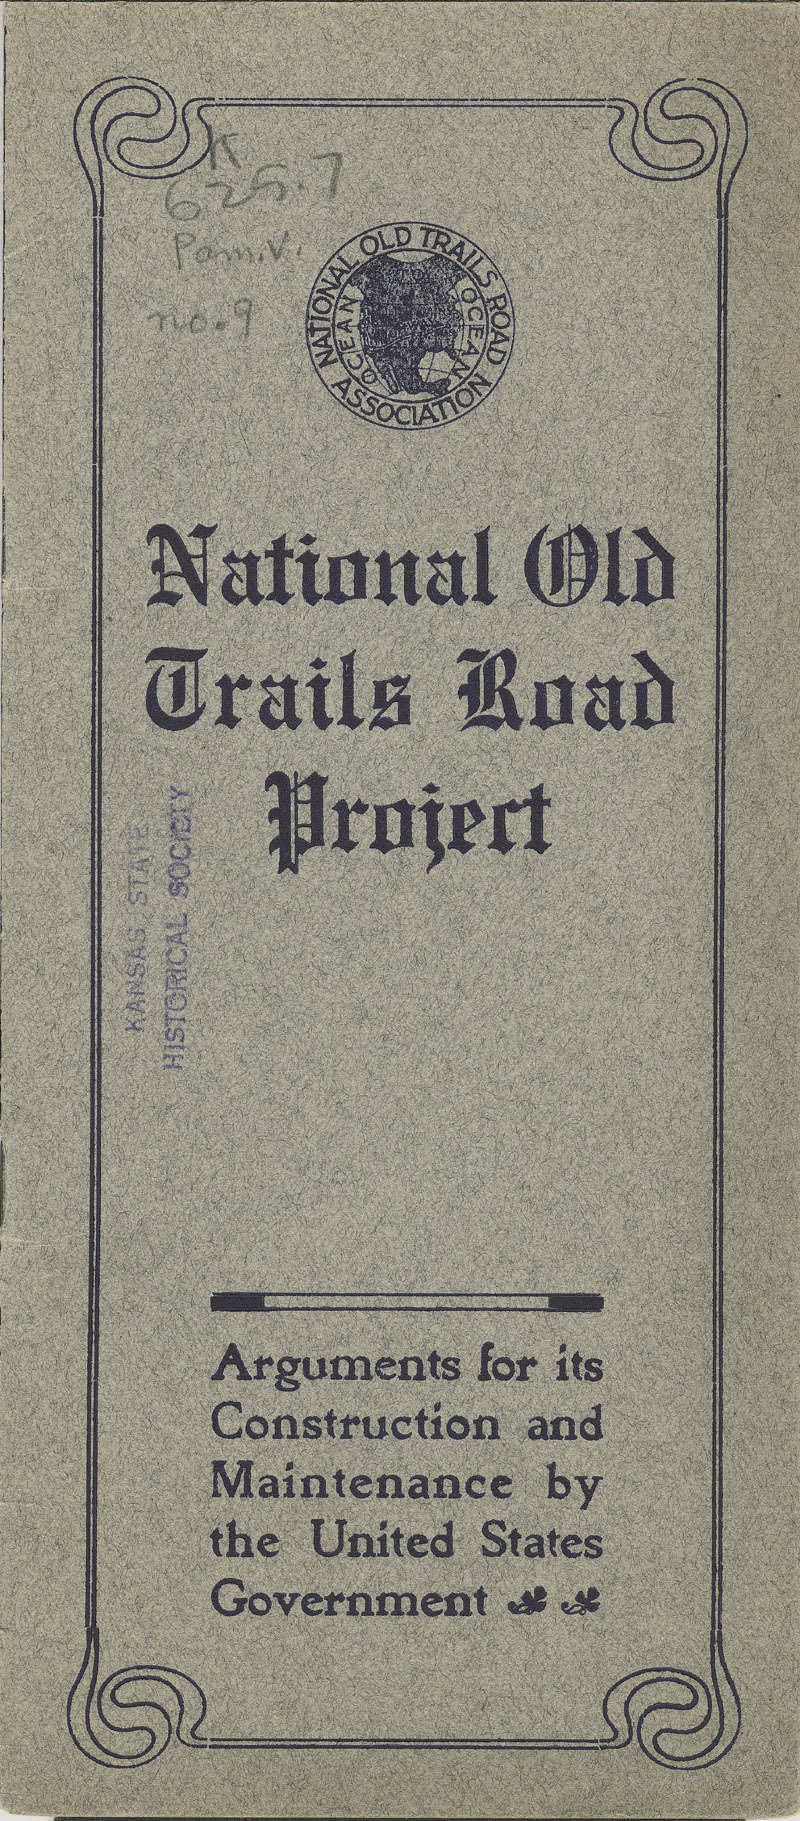 National Old Trails Road project : arguments for its construction and maintenance by the United States government - front cover